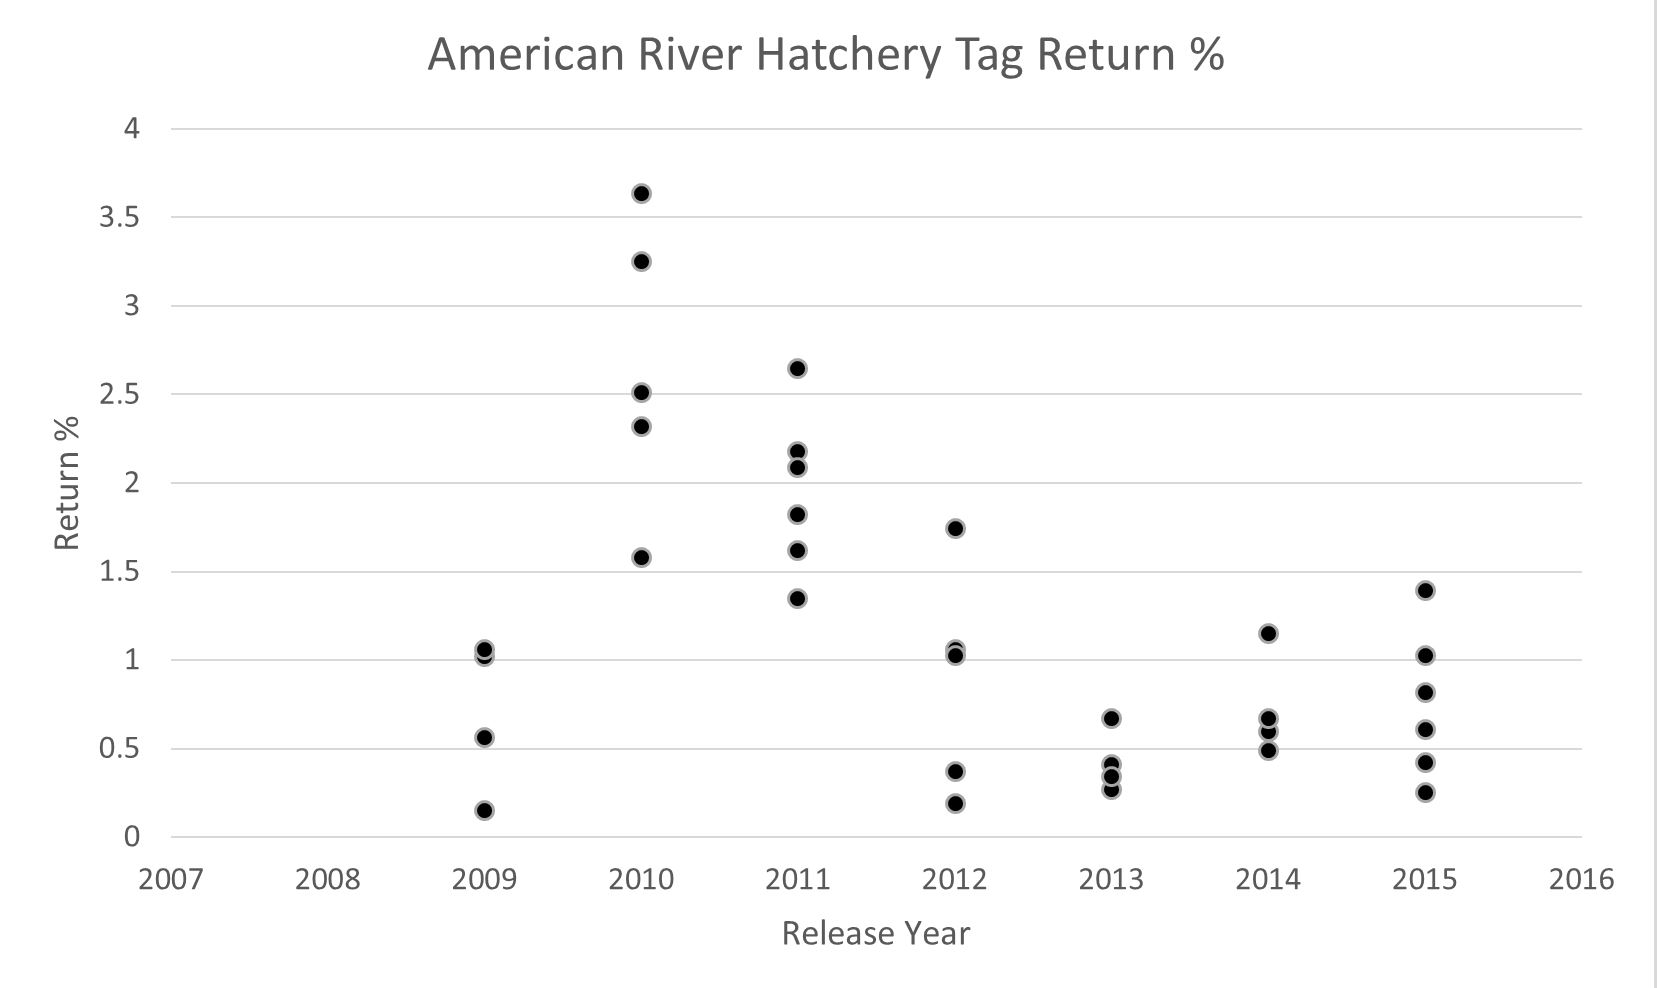 Figure 3. American River Hatchery smolt release group survival (%return) for 2009 to 2015. Data Source: https://www.rmis.org/.